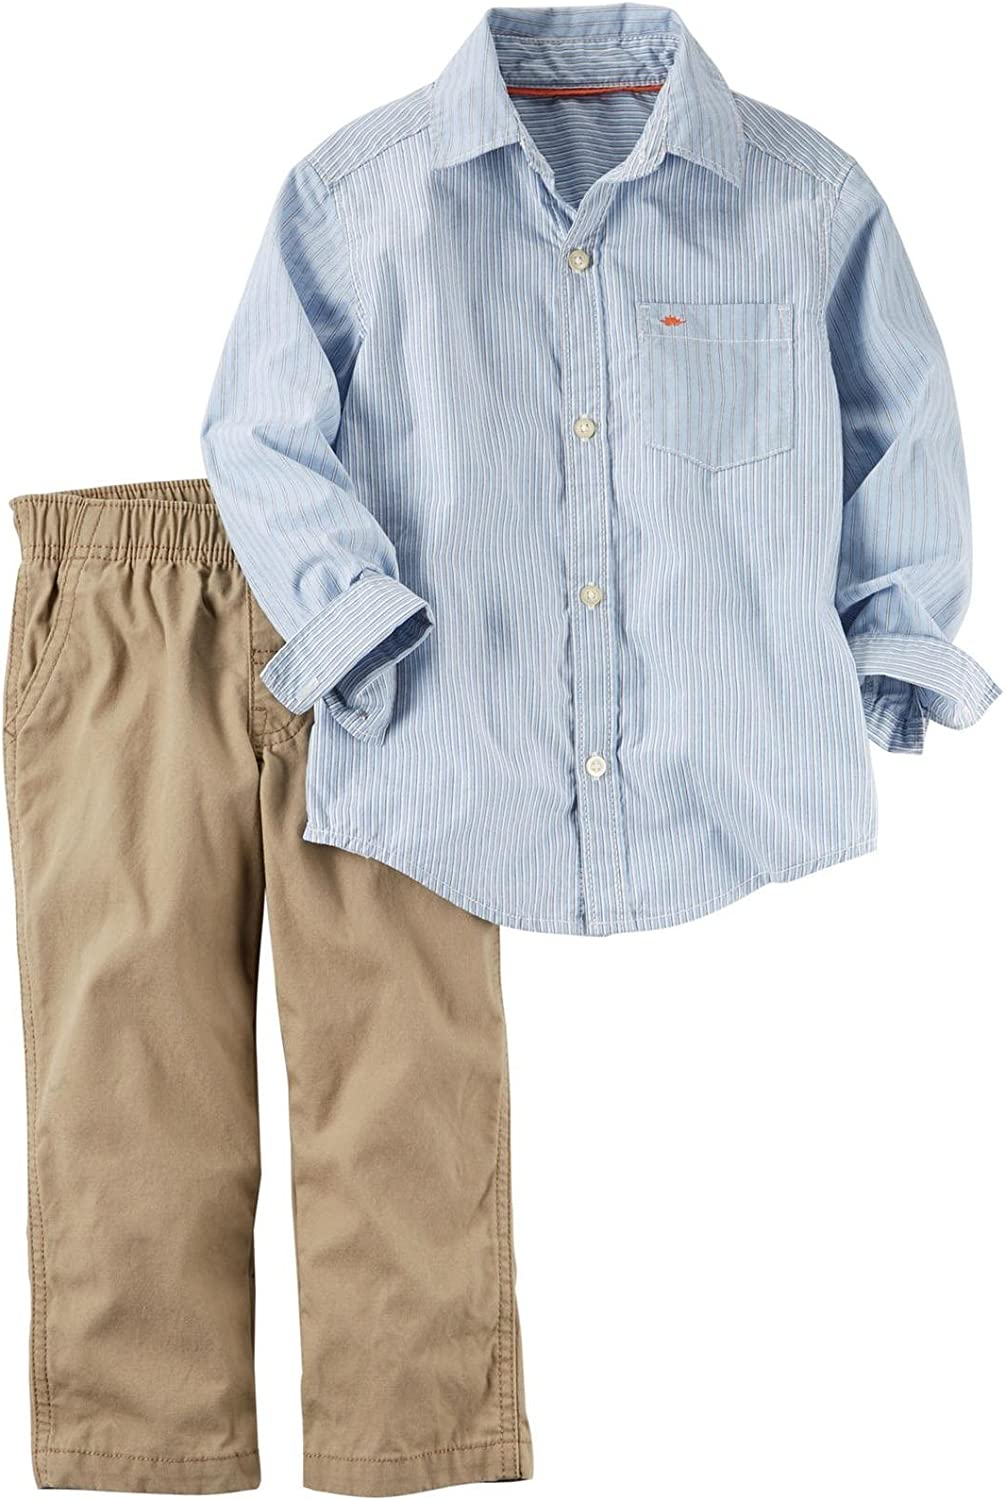 Carter's Baby Boys' lowest price 2 Playwear Sets Ranking TOP5 Pc 229g395